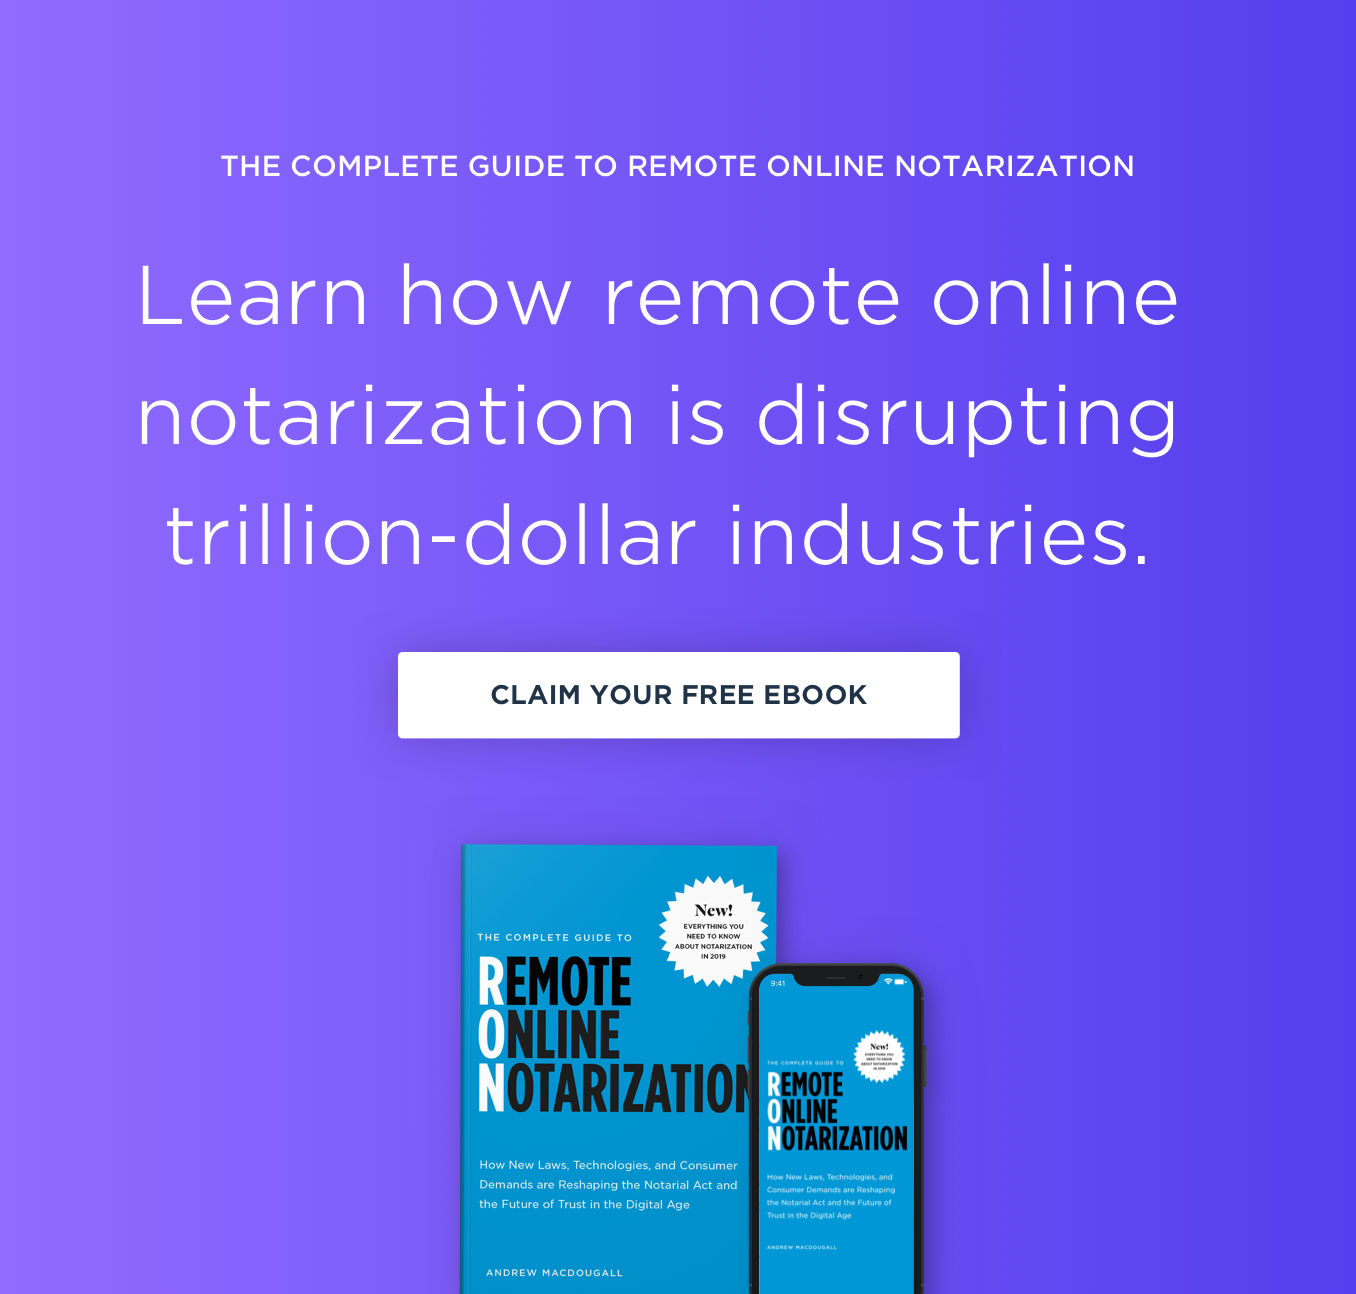 Learn how remote online notarization is disrupting trillion-dollar industries.